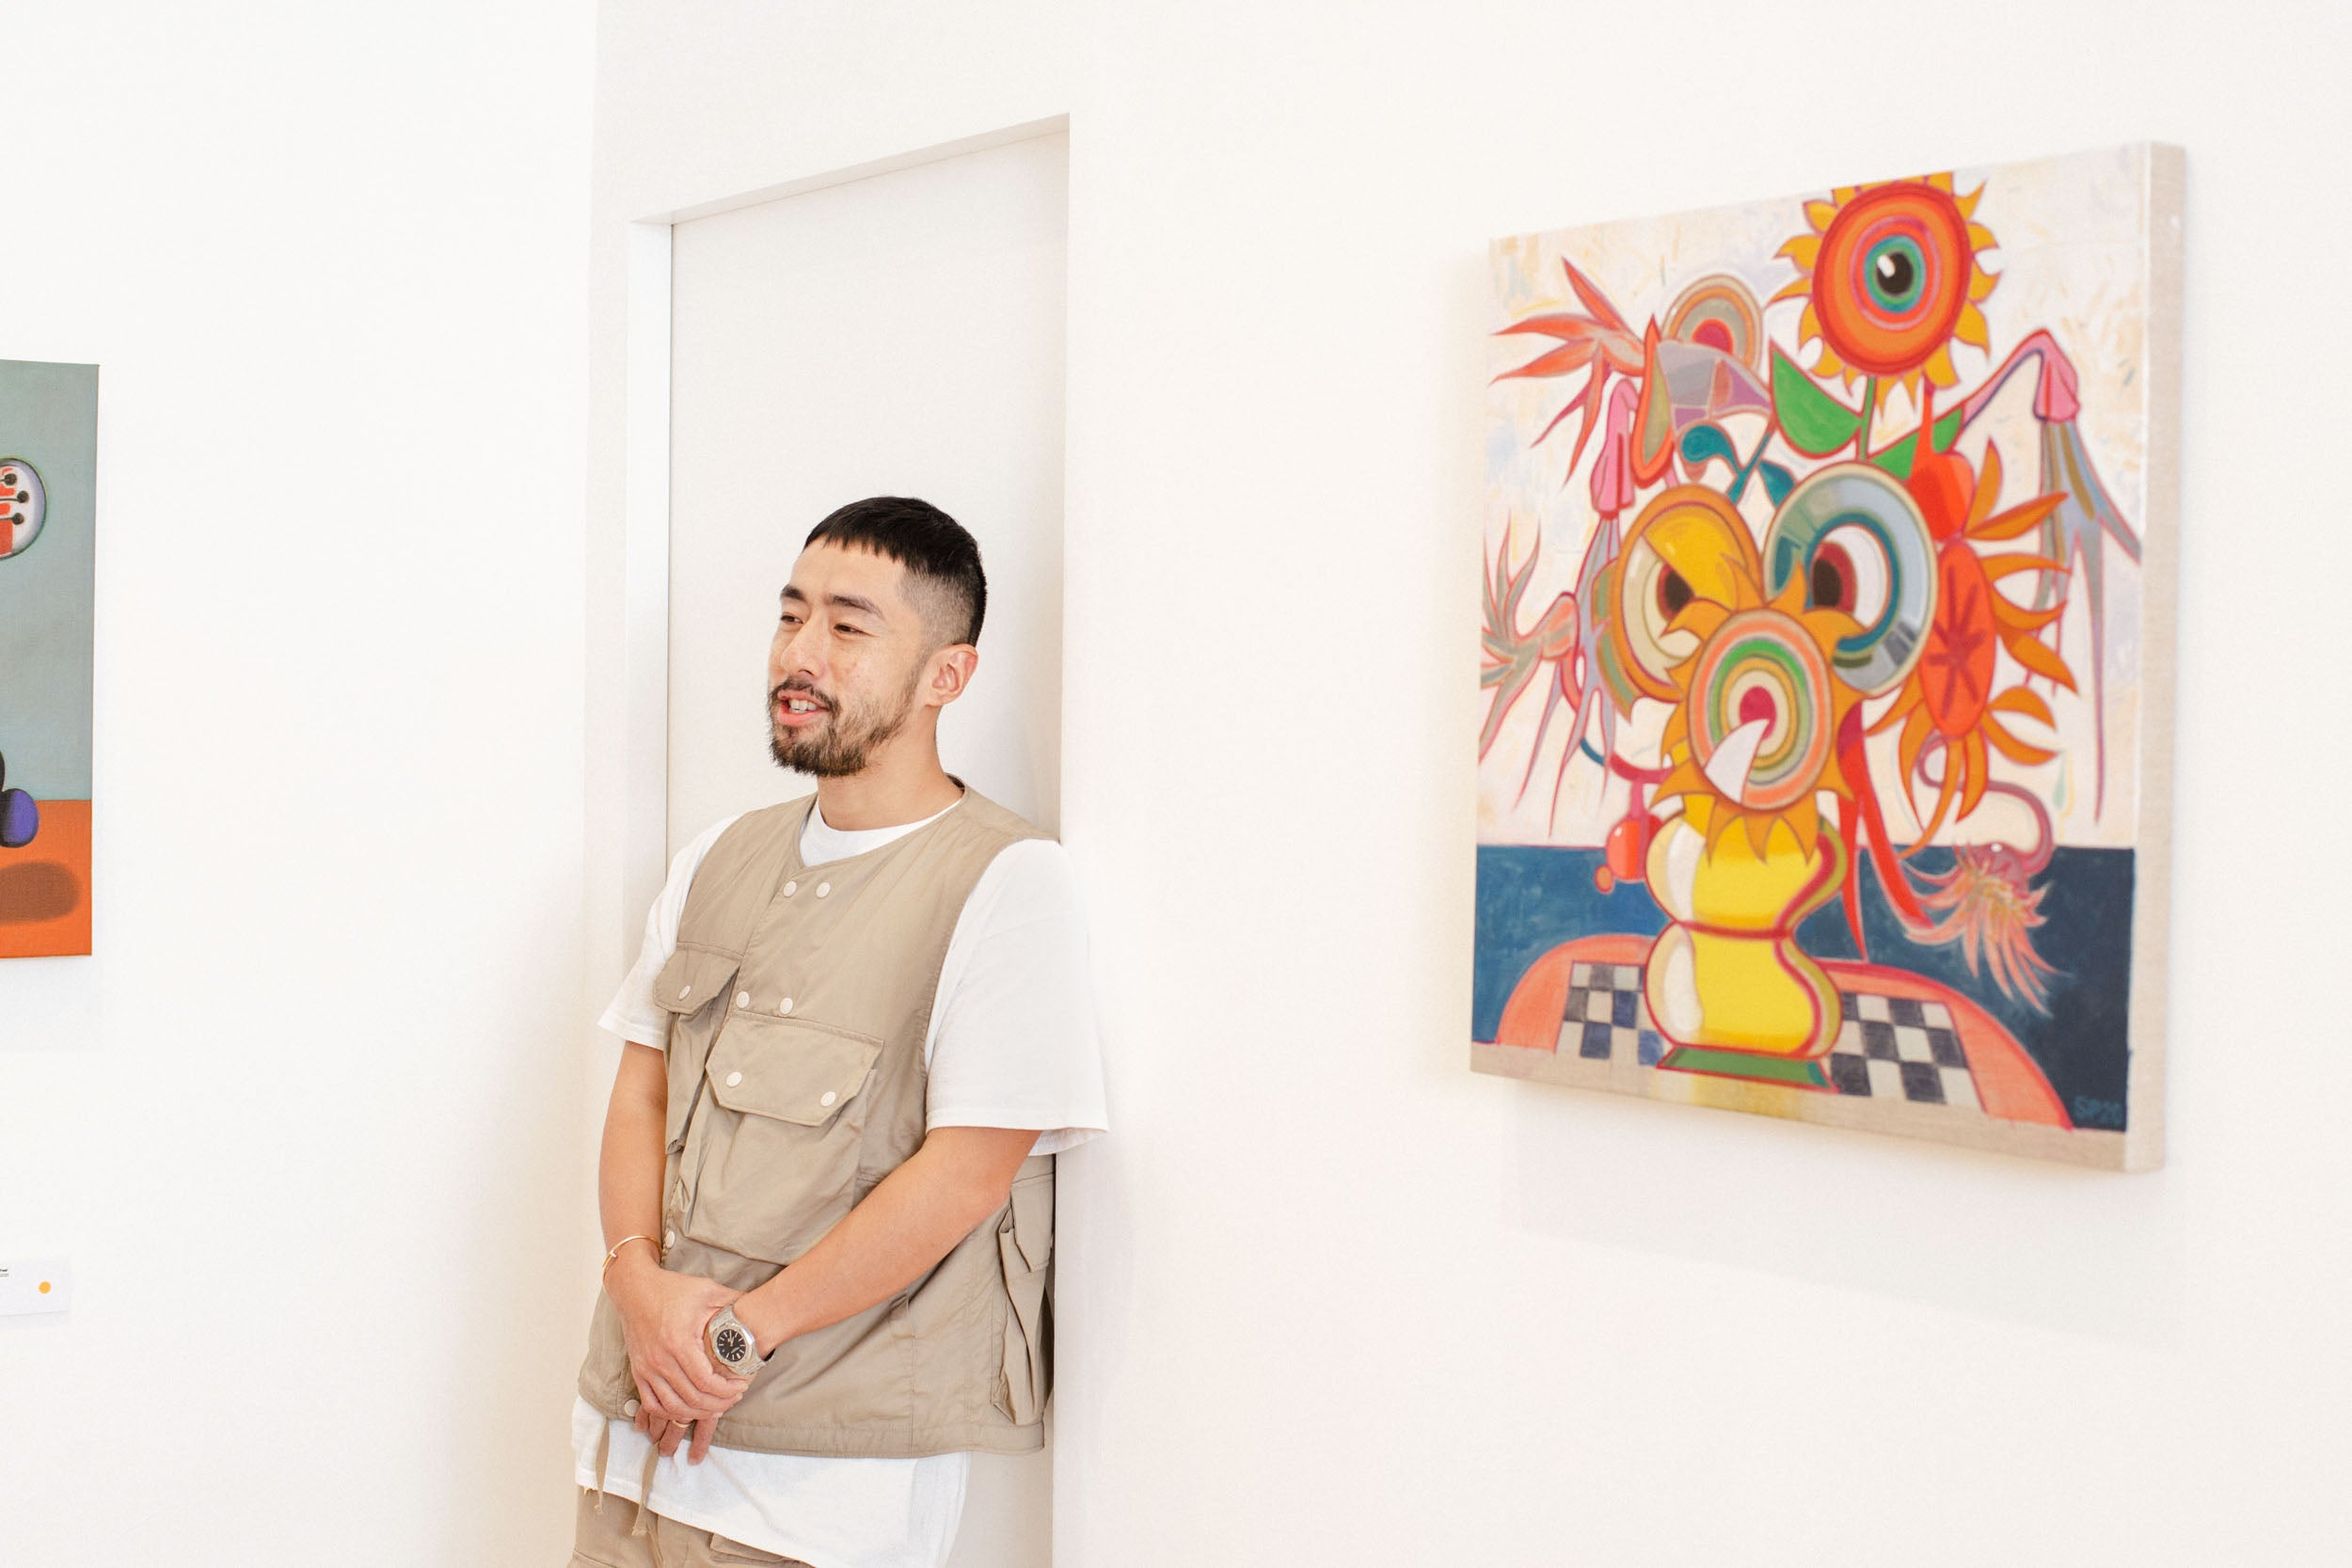 Poon stood by doorway in Obsessions: Contemporary Culture with Kevin Poon for A Collected Man London